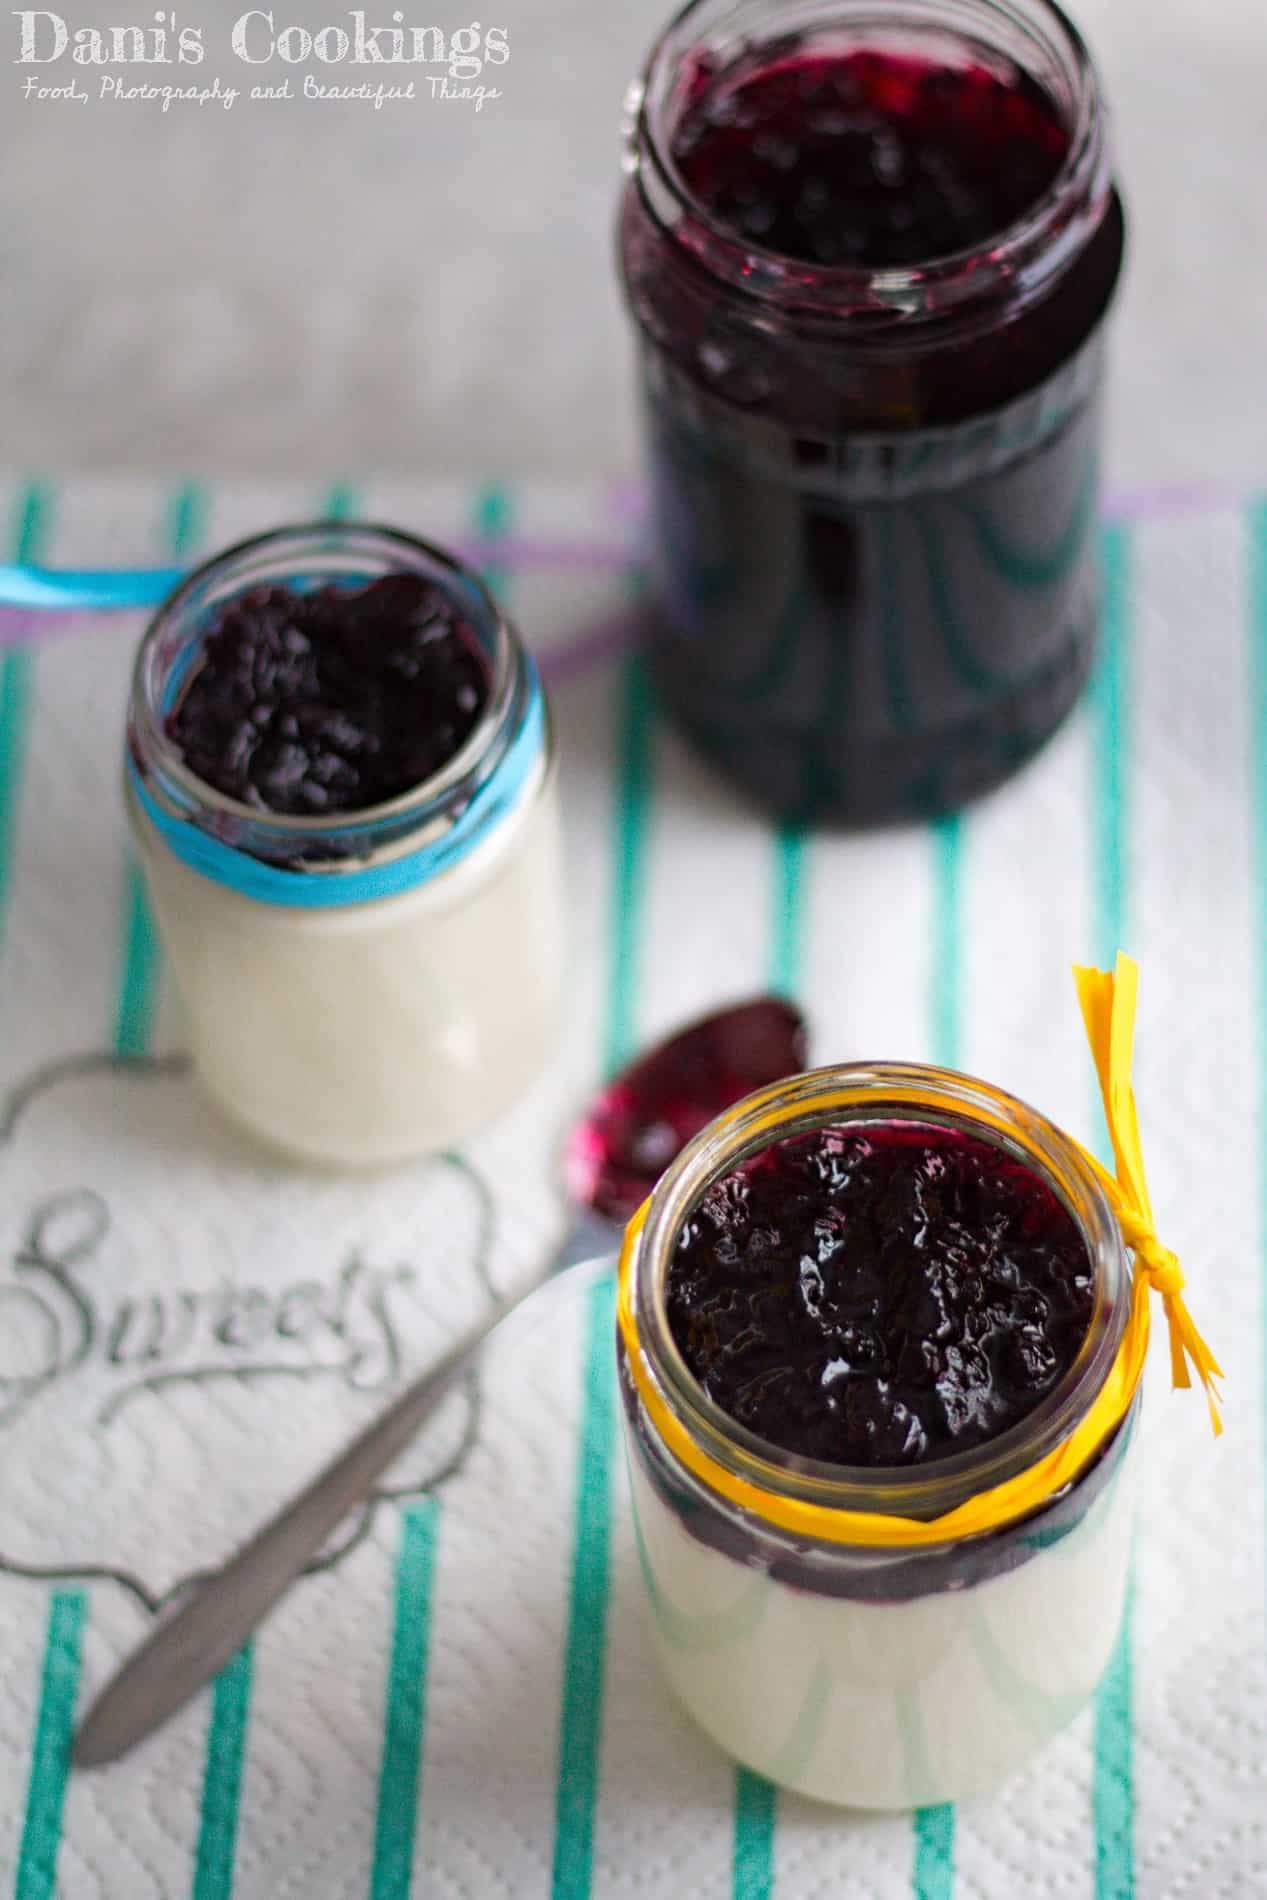 panna cotta with blueberry jam in jars and a jar of jam aside